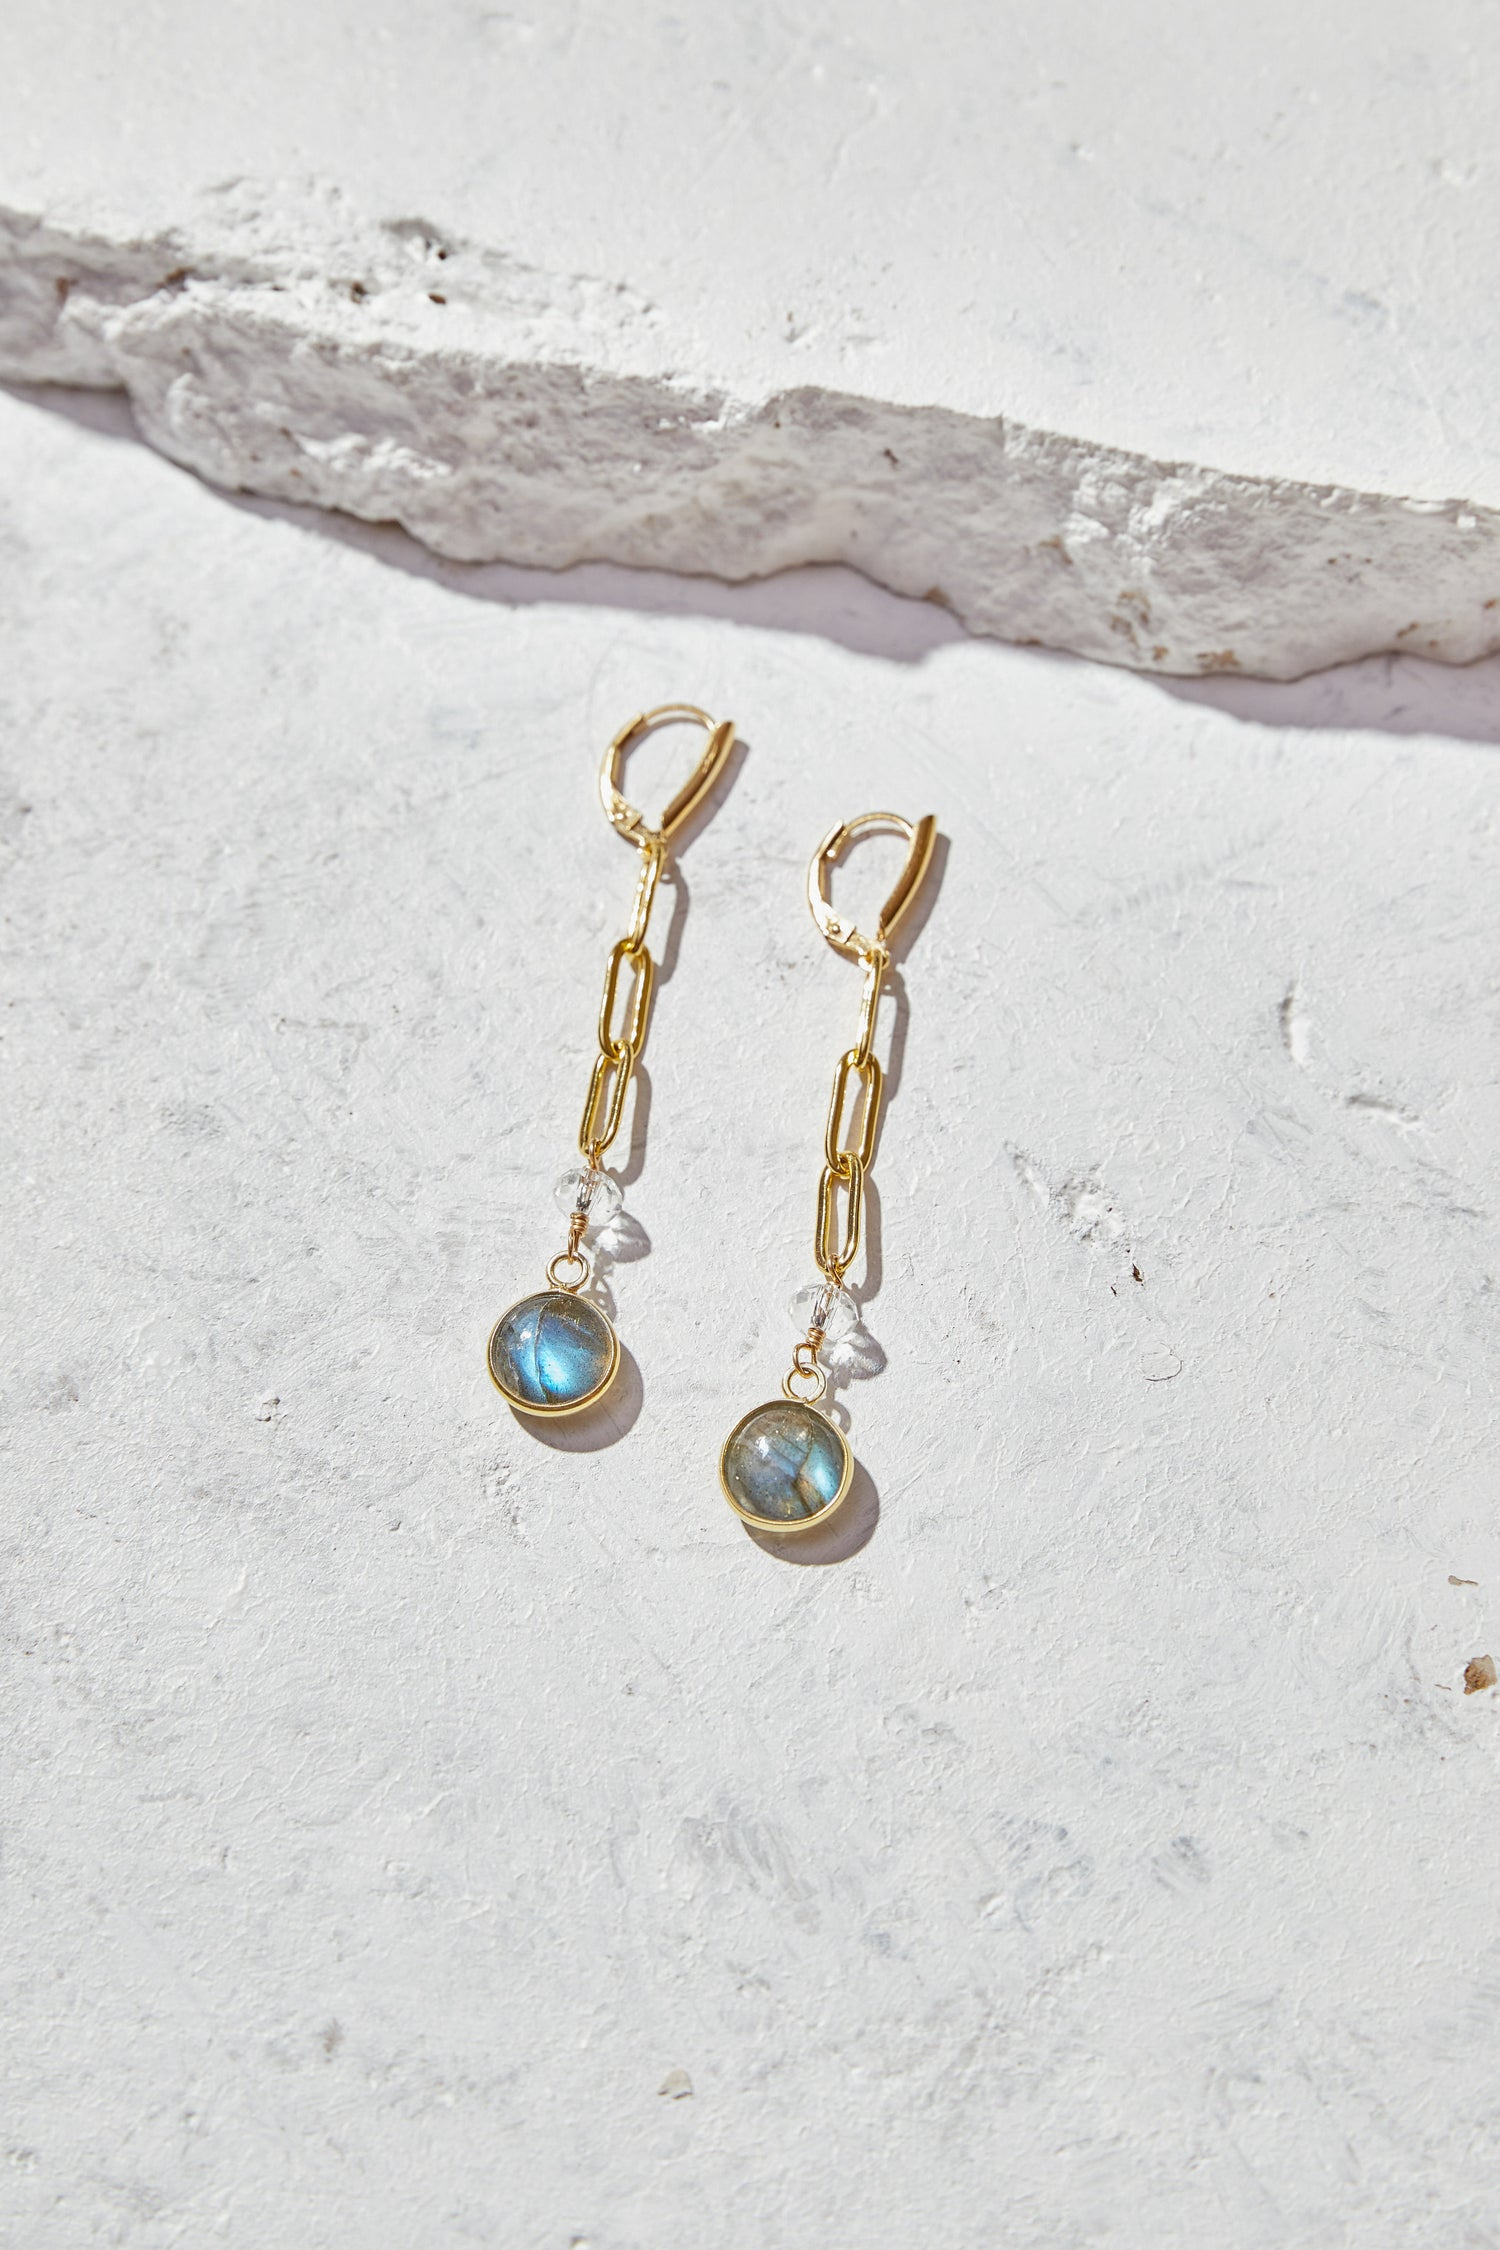 Image of Labradorite Earrings